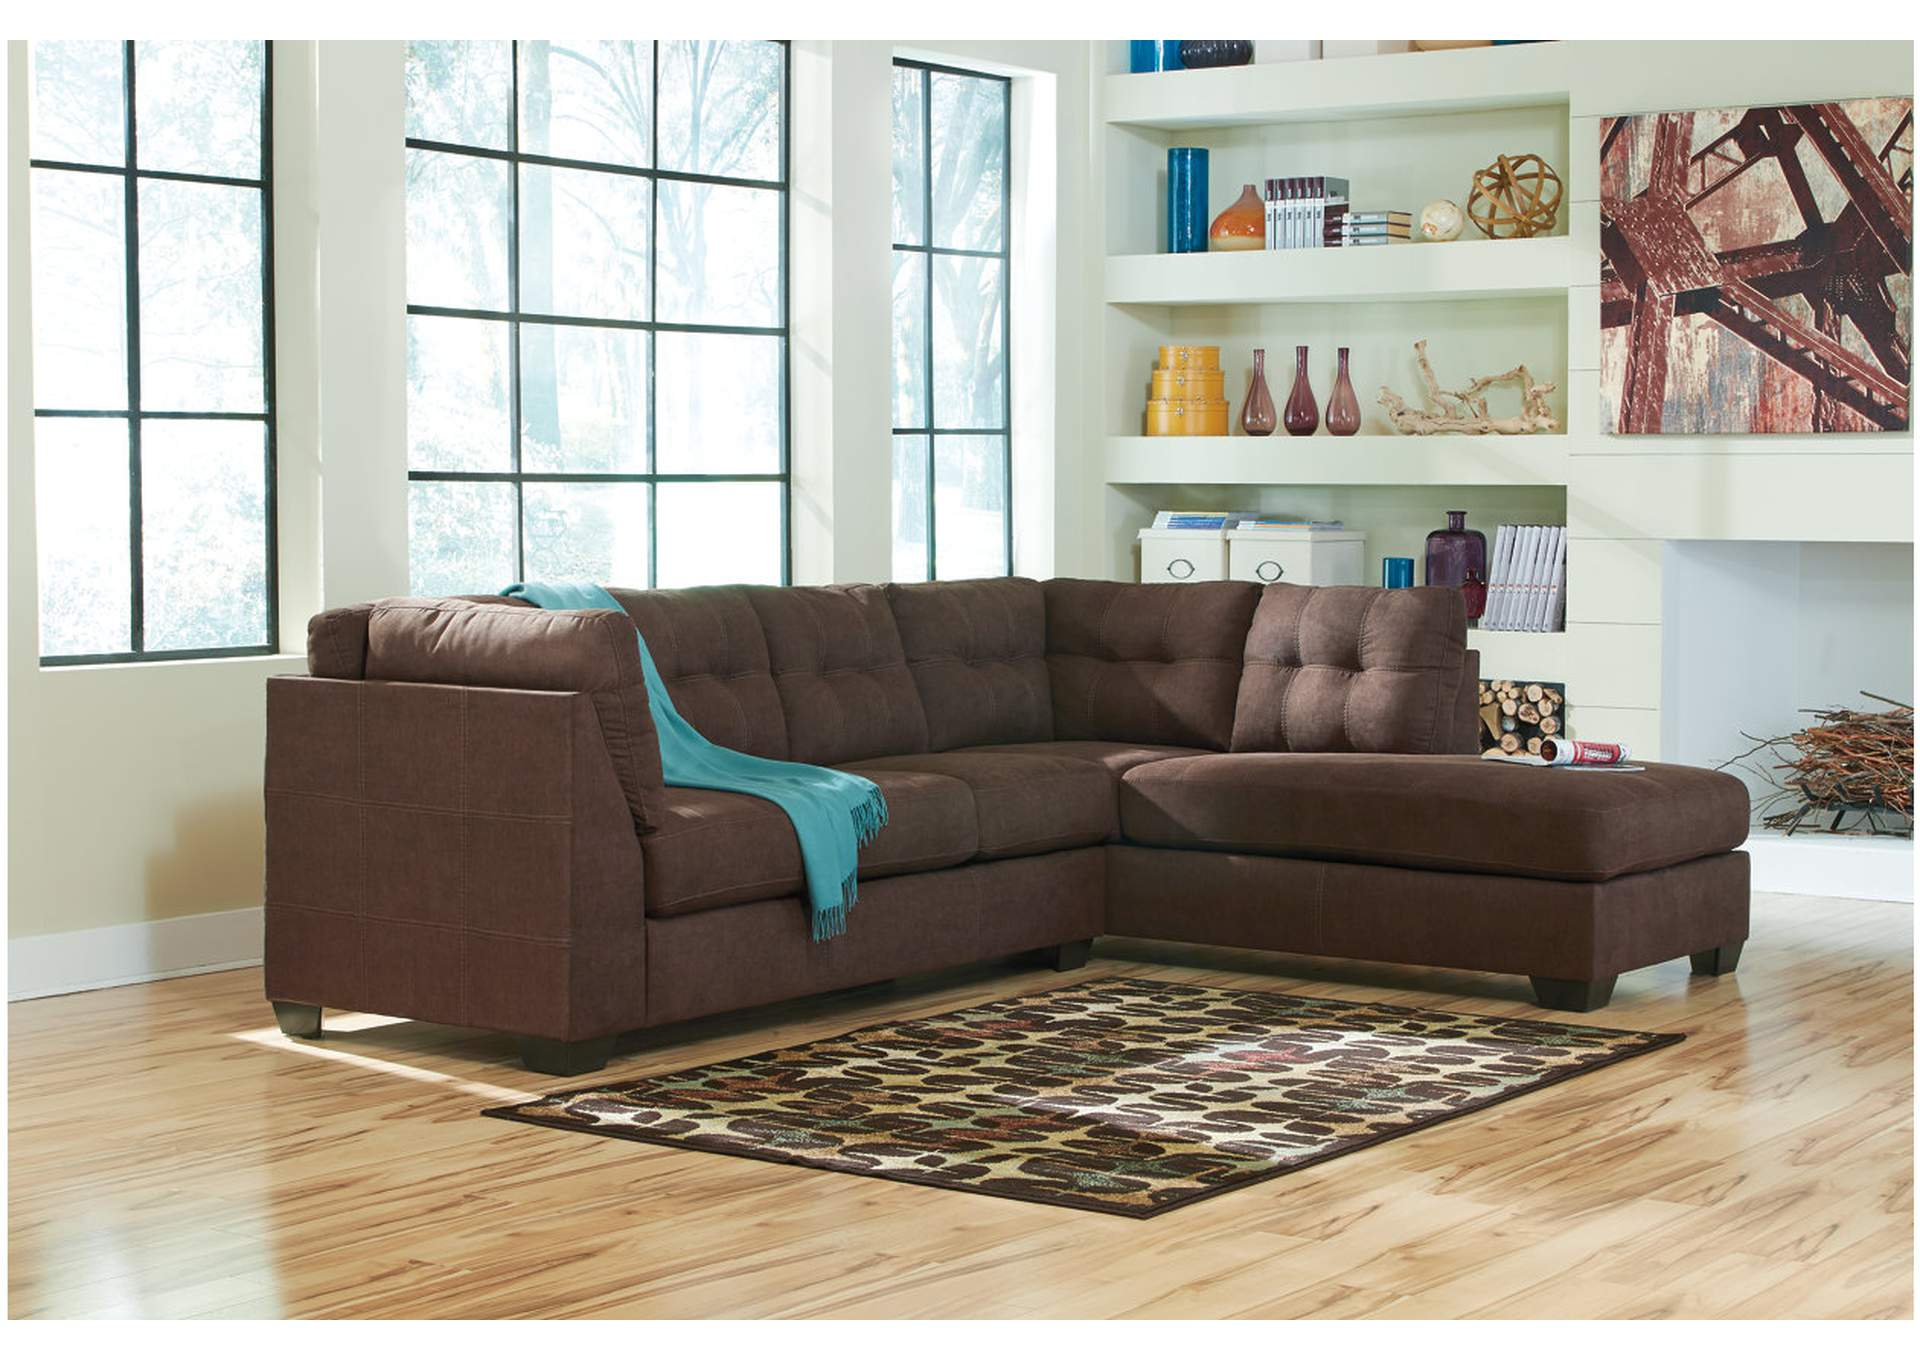 Maier Walnut Right Arm Facing Chaise End Sectional,Benchcraft